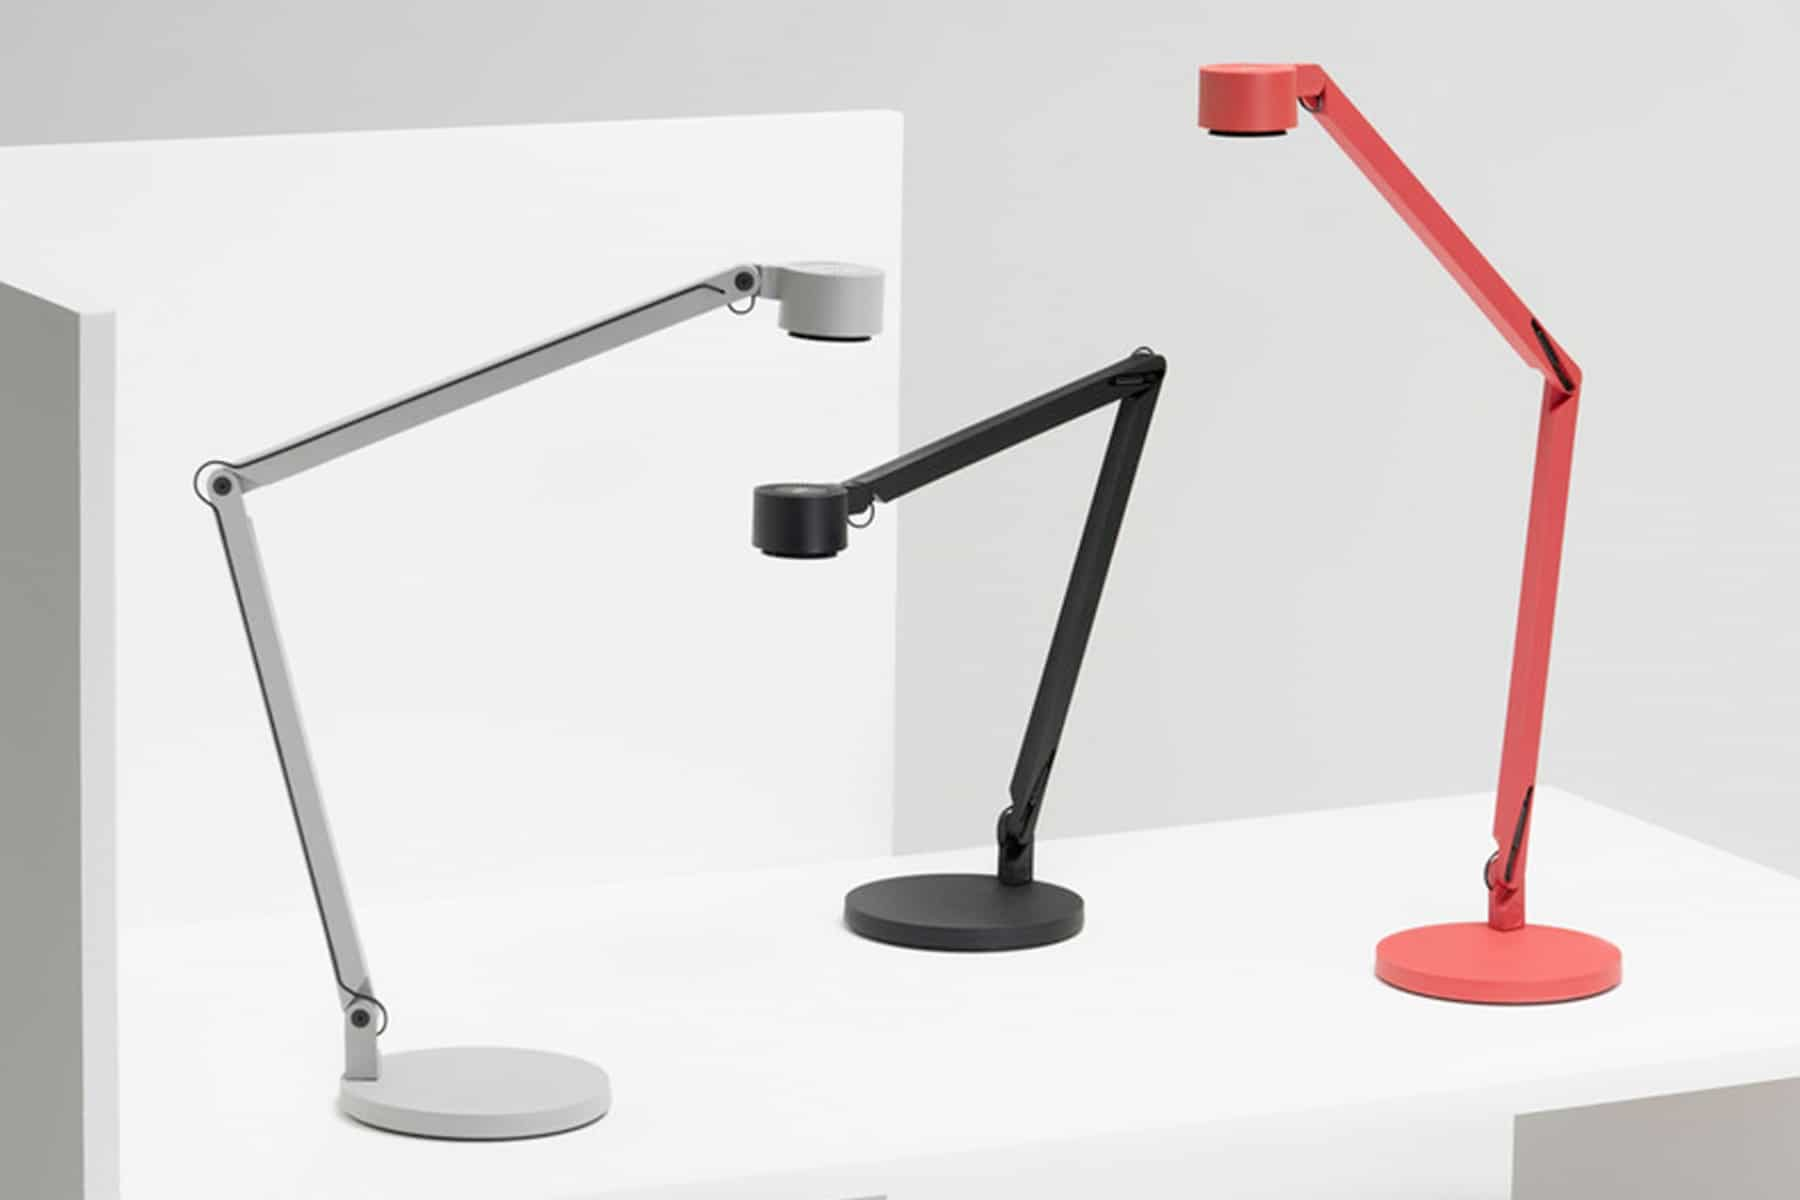 skate chair staples burlap sashes diy 10 best desk lamps for the home office man of many